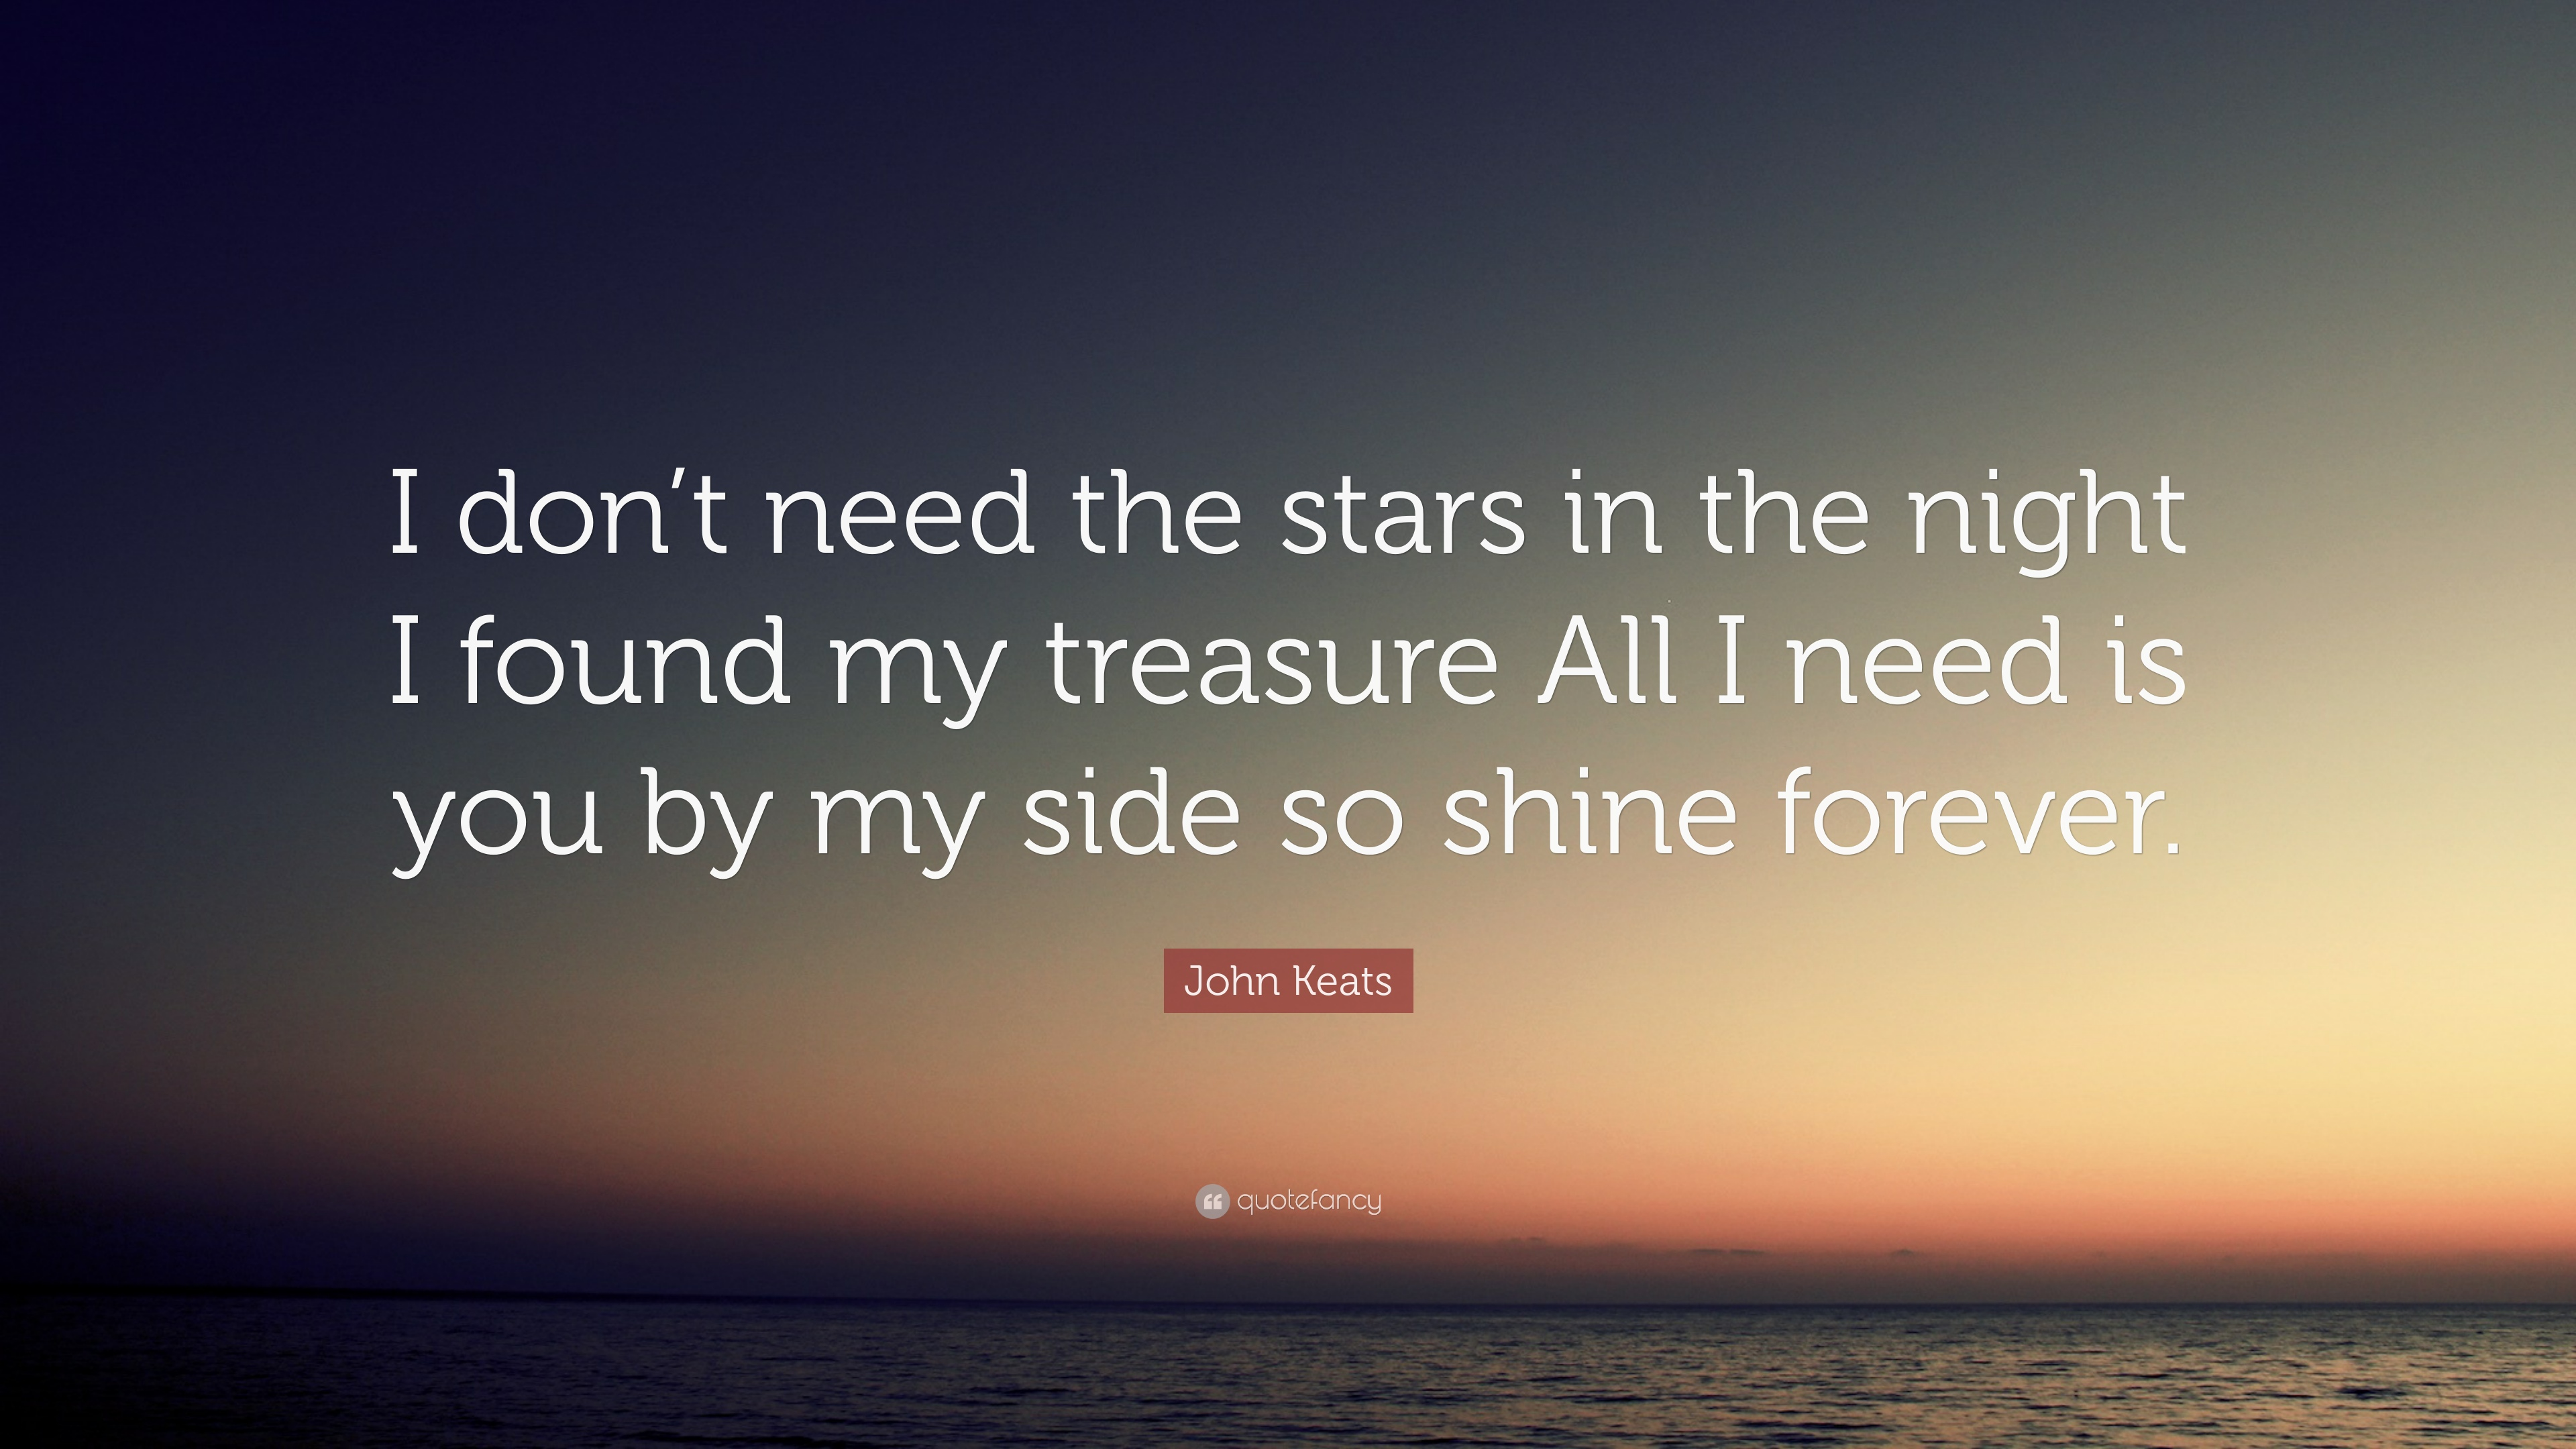 John Keats Quote I Dont Need The Stars In The Night I Found My